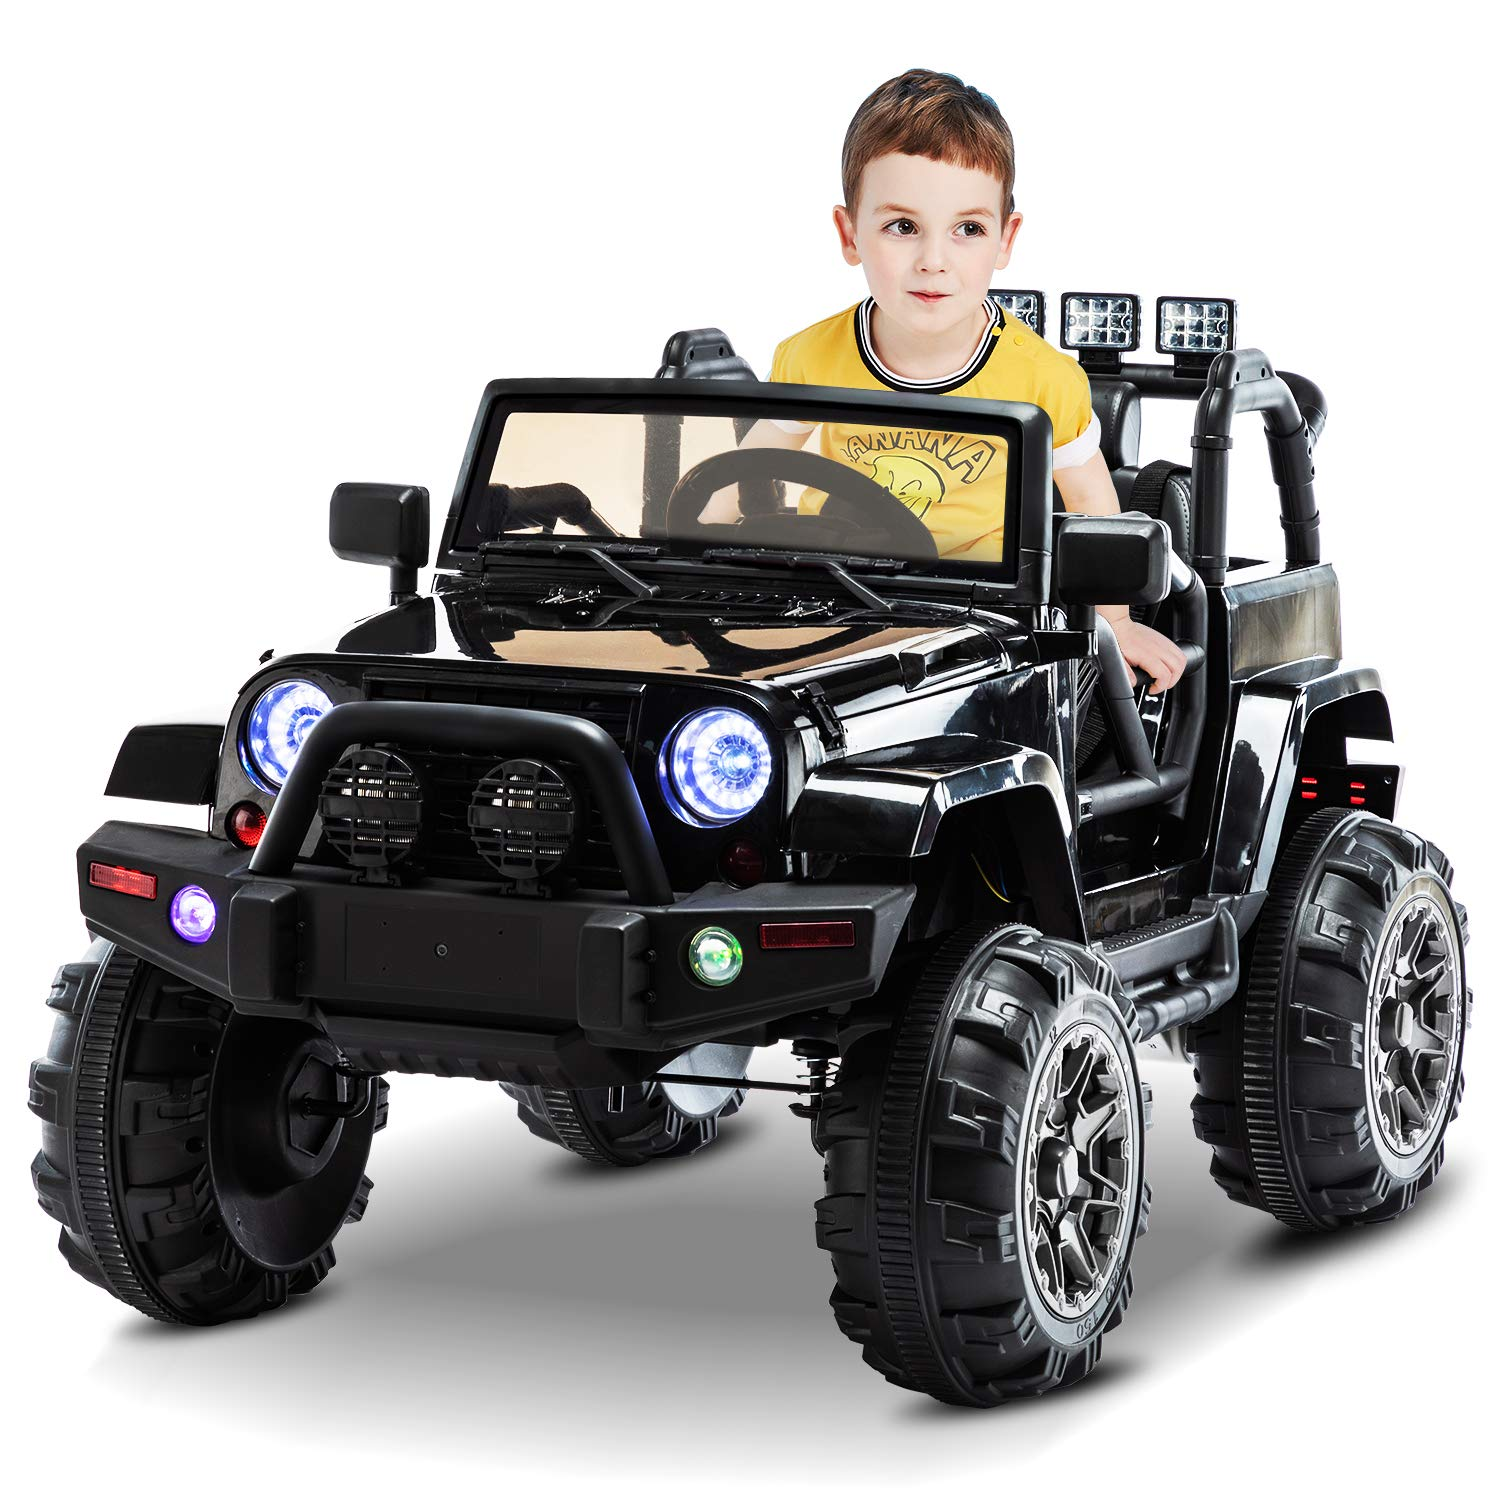 AuAg Electric Ride On Car/Truck Ride on Toys with Parental Remote Control 12V Two Speeds LED Lights MP3 Player Prerecorded Kid Song Easy to Assemble Indoor and Outdoor Gift for Kids